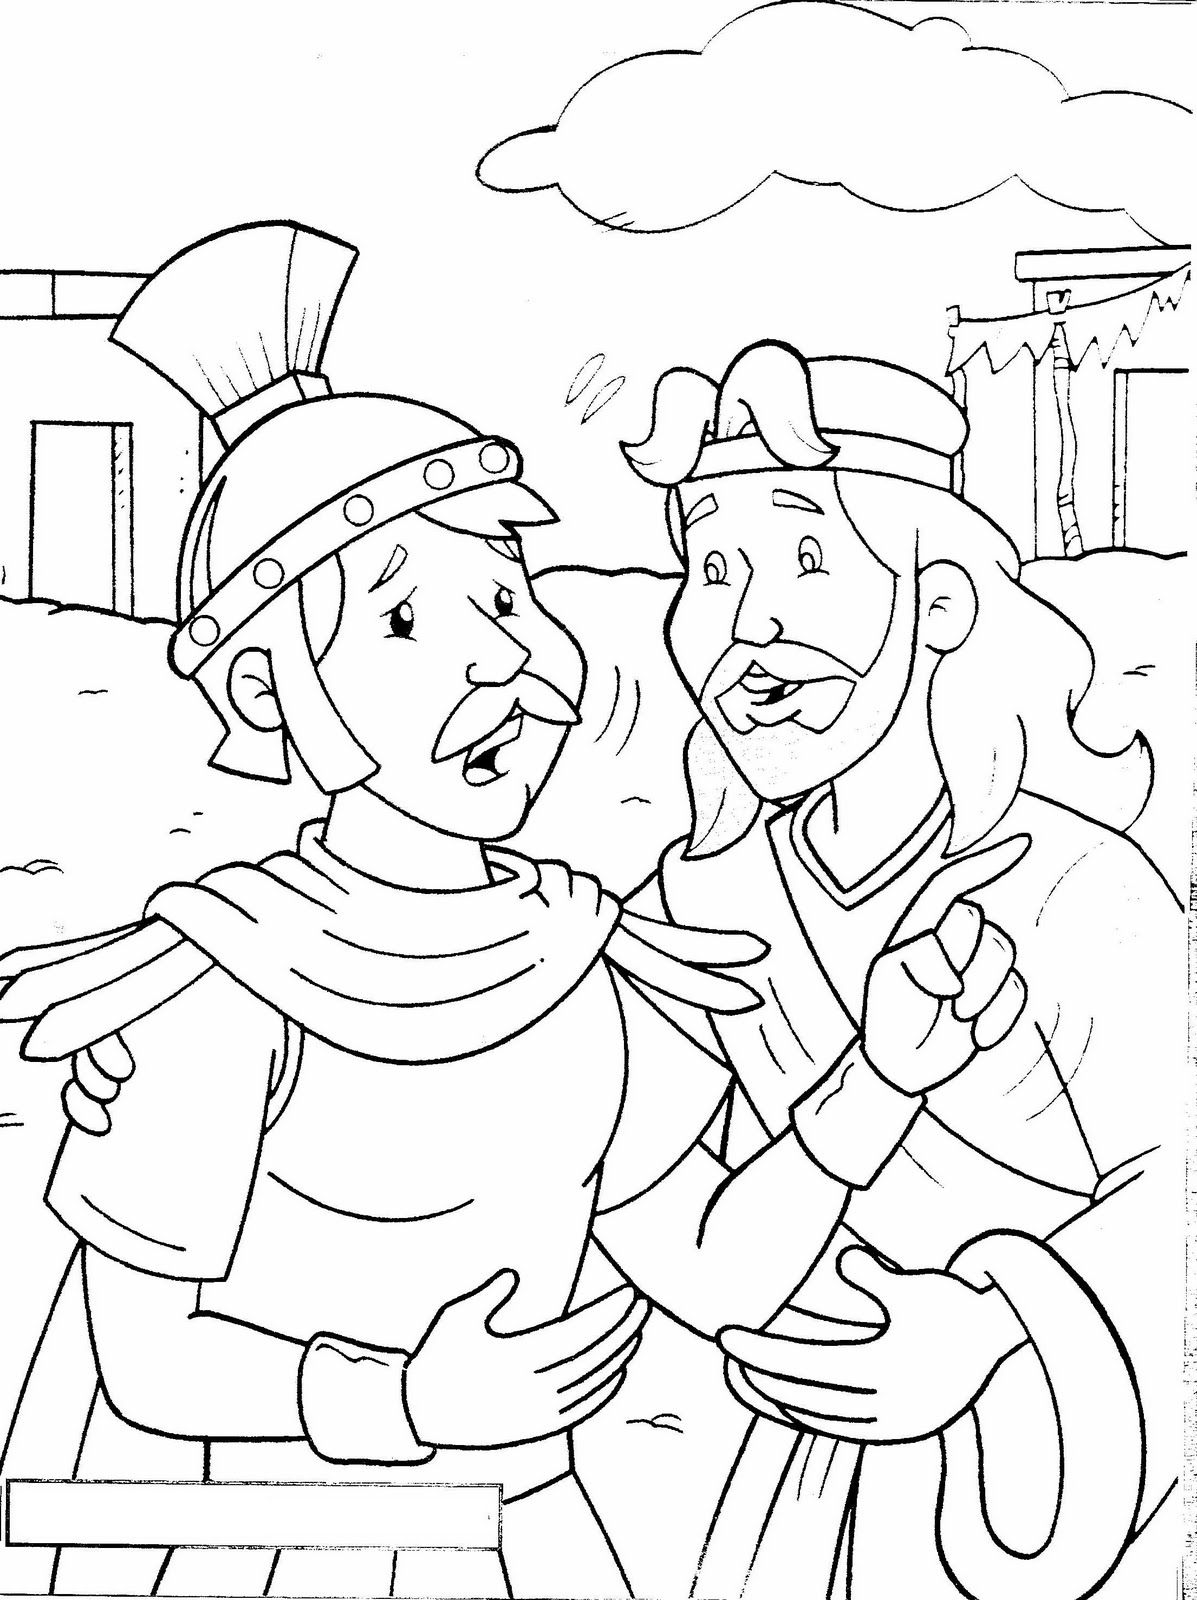 bible coloring pages of jesus - photo#13